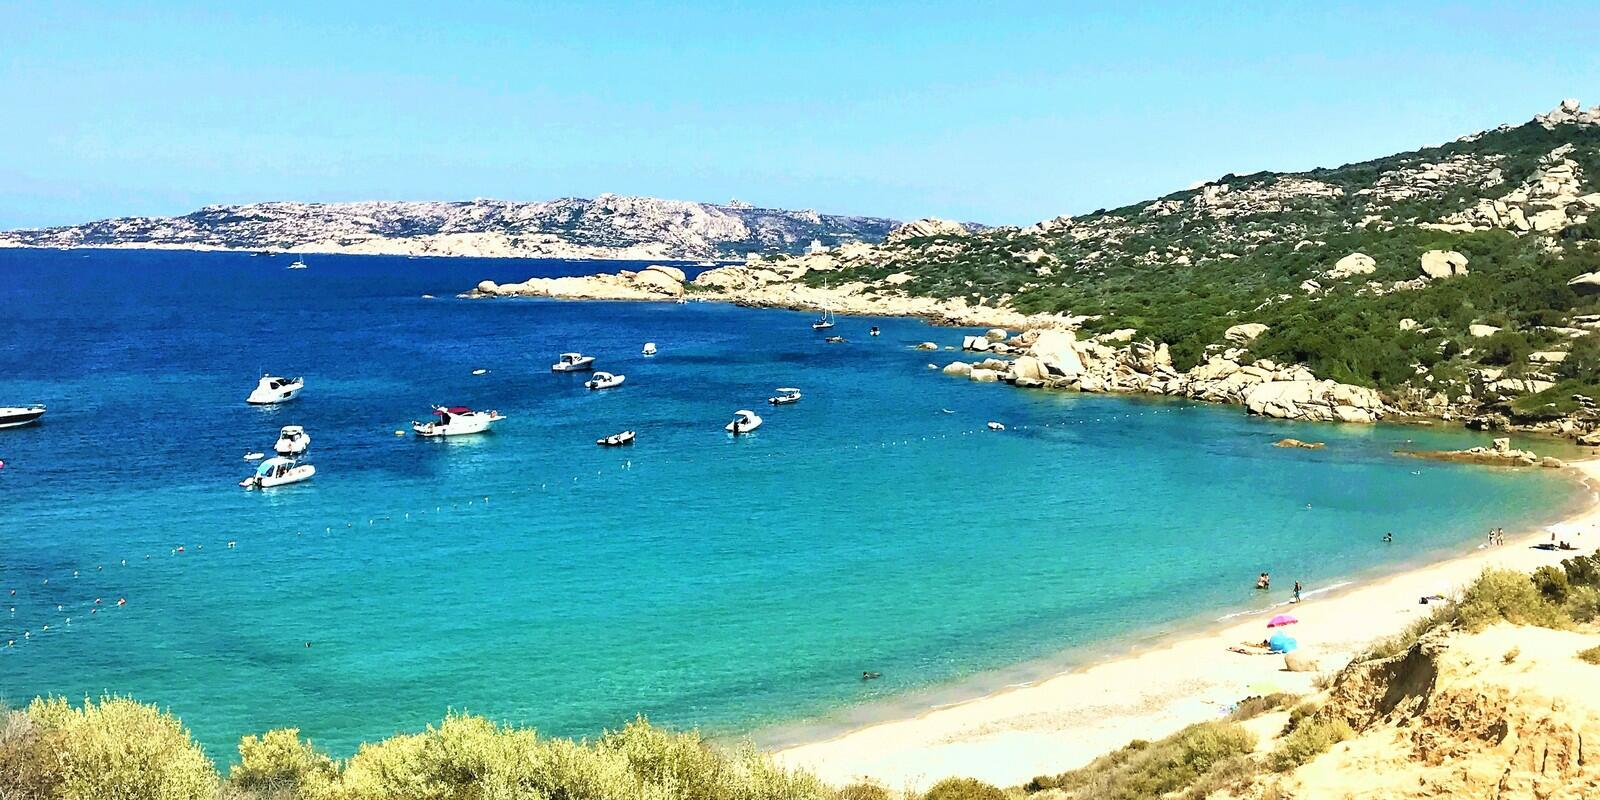 Daily sailing between the most beautiful beaches of La Maddalena